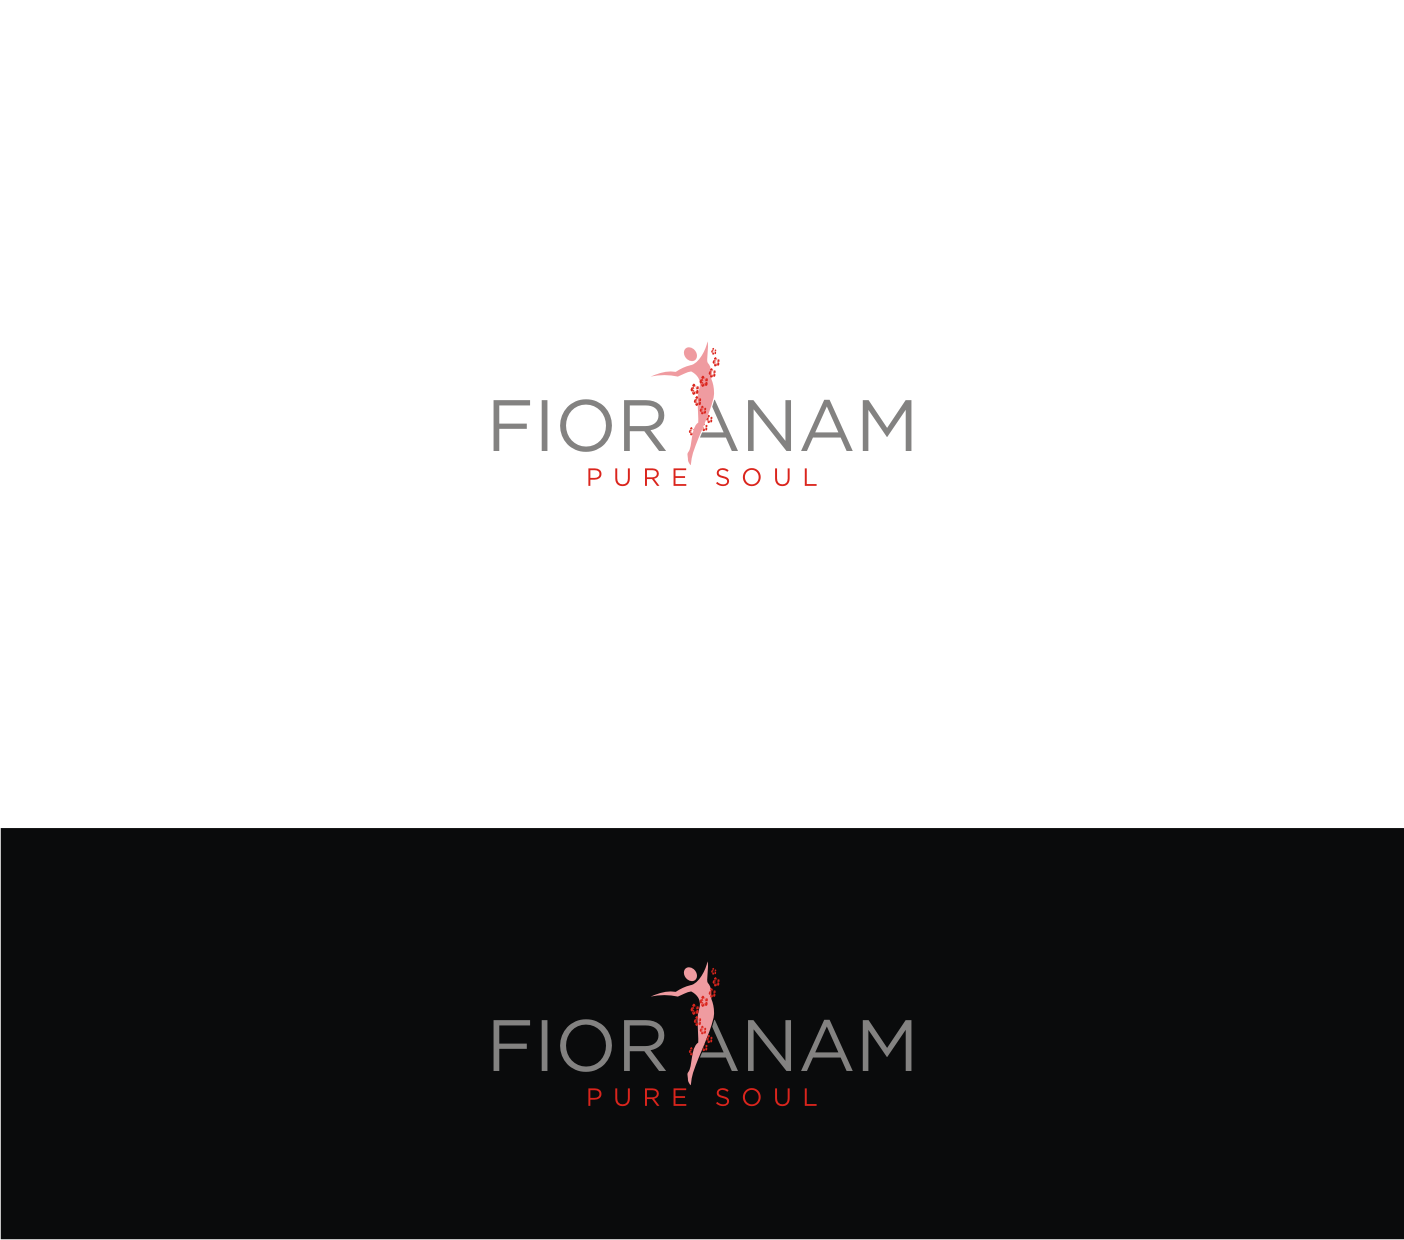 Logo Design by Sigitumarali Sigit - Entry No. 293 in the Logo Design Contest Creative Logo Design for Fior Anam.